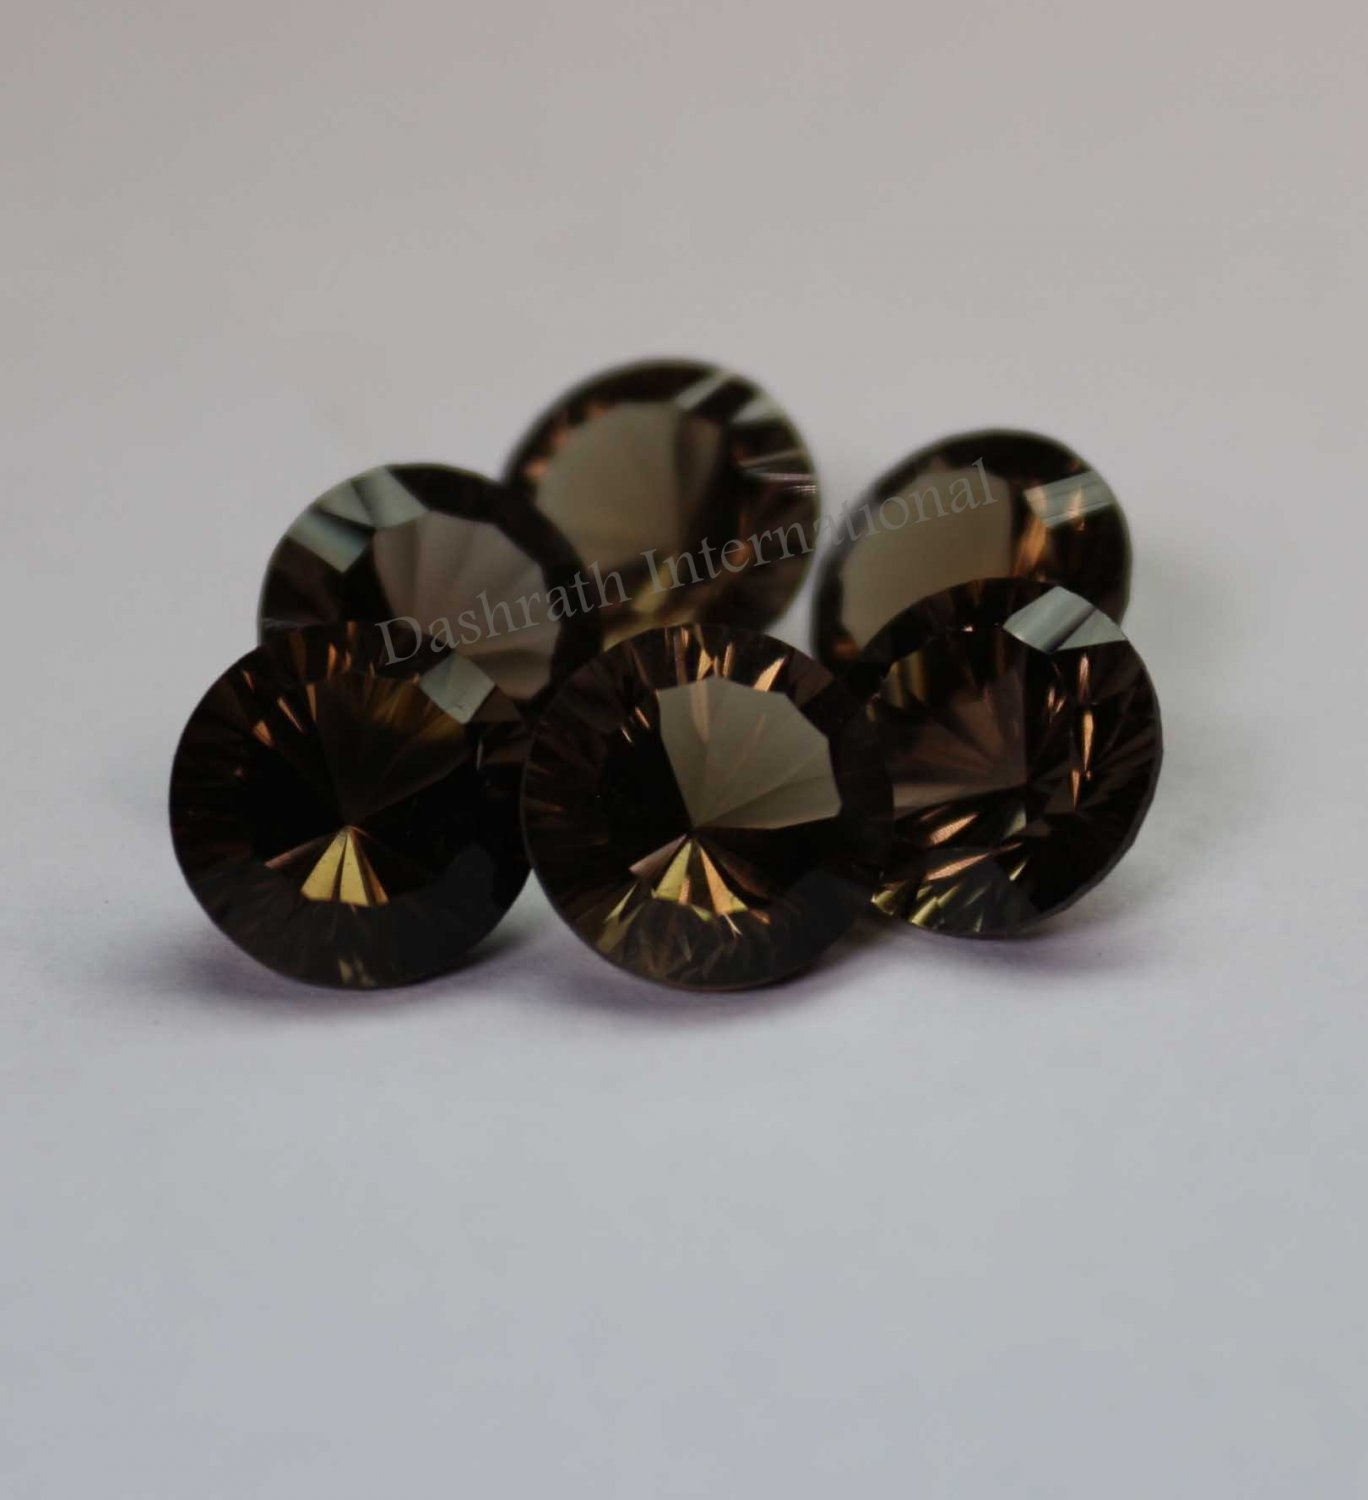 20mm Natural Smoky Quartz Concave Cut Round 10 Pieces Lot    (SI) Top Quality  Loose Gemstone